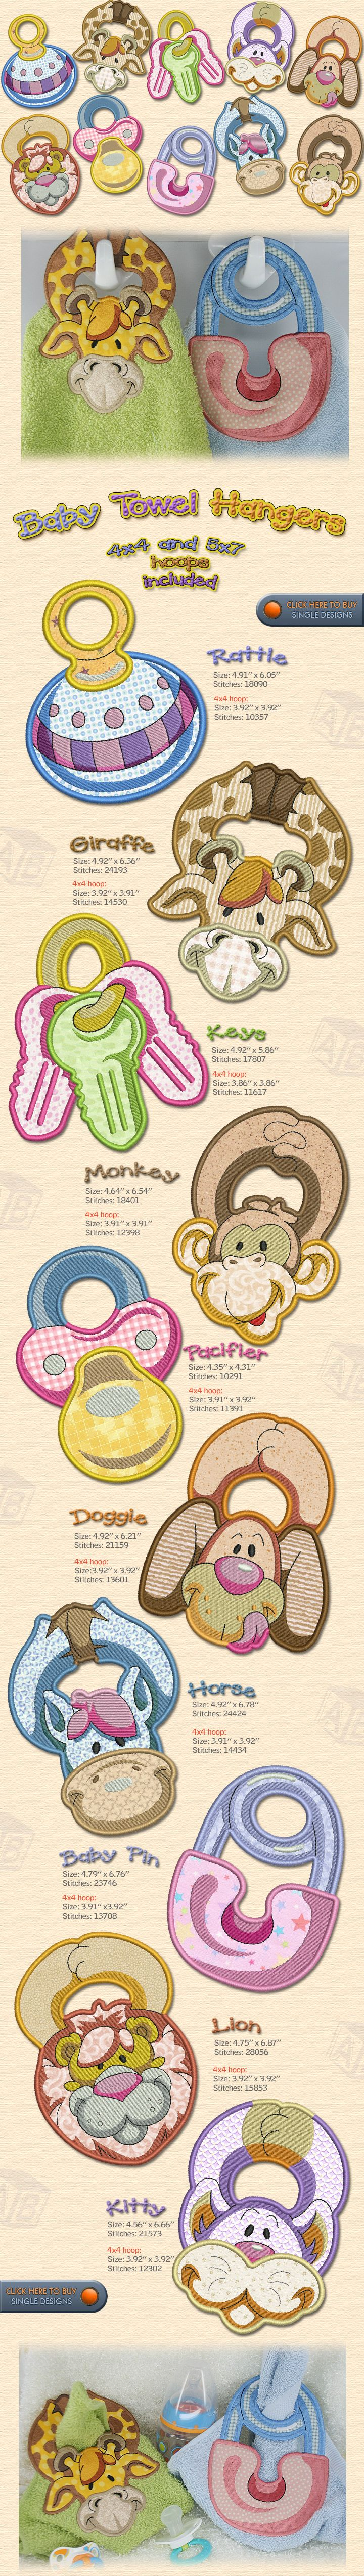 Baby Towel Hangers Embroidery Designs Free Embroidery Design Patterns Applique